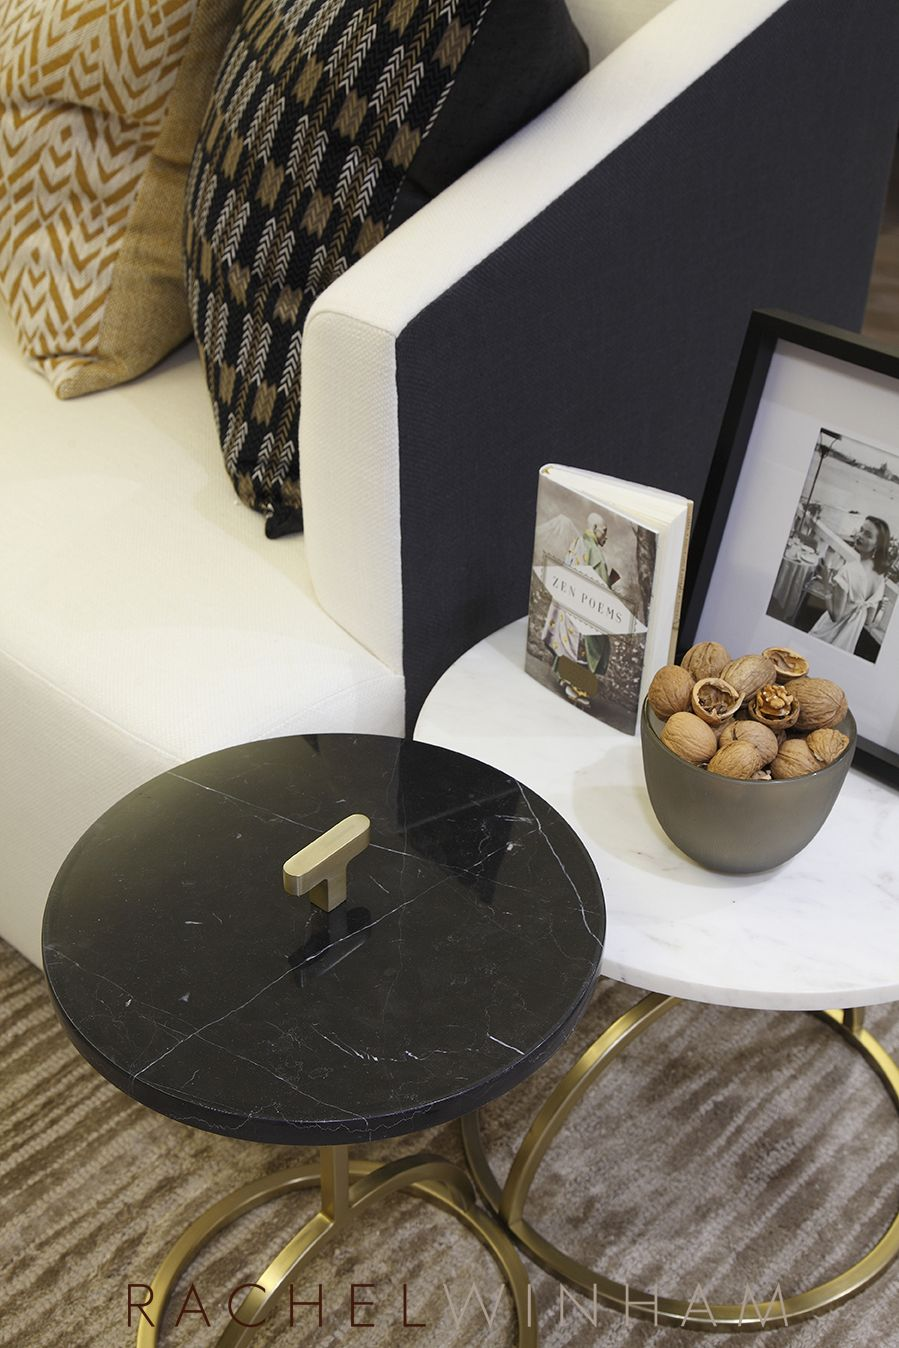 Nesting Side Tables Recently Used By Rachel Winham Interior Design For A  Project In Fuham,